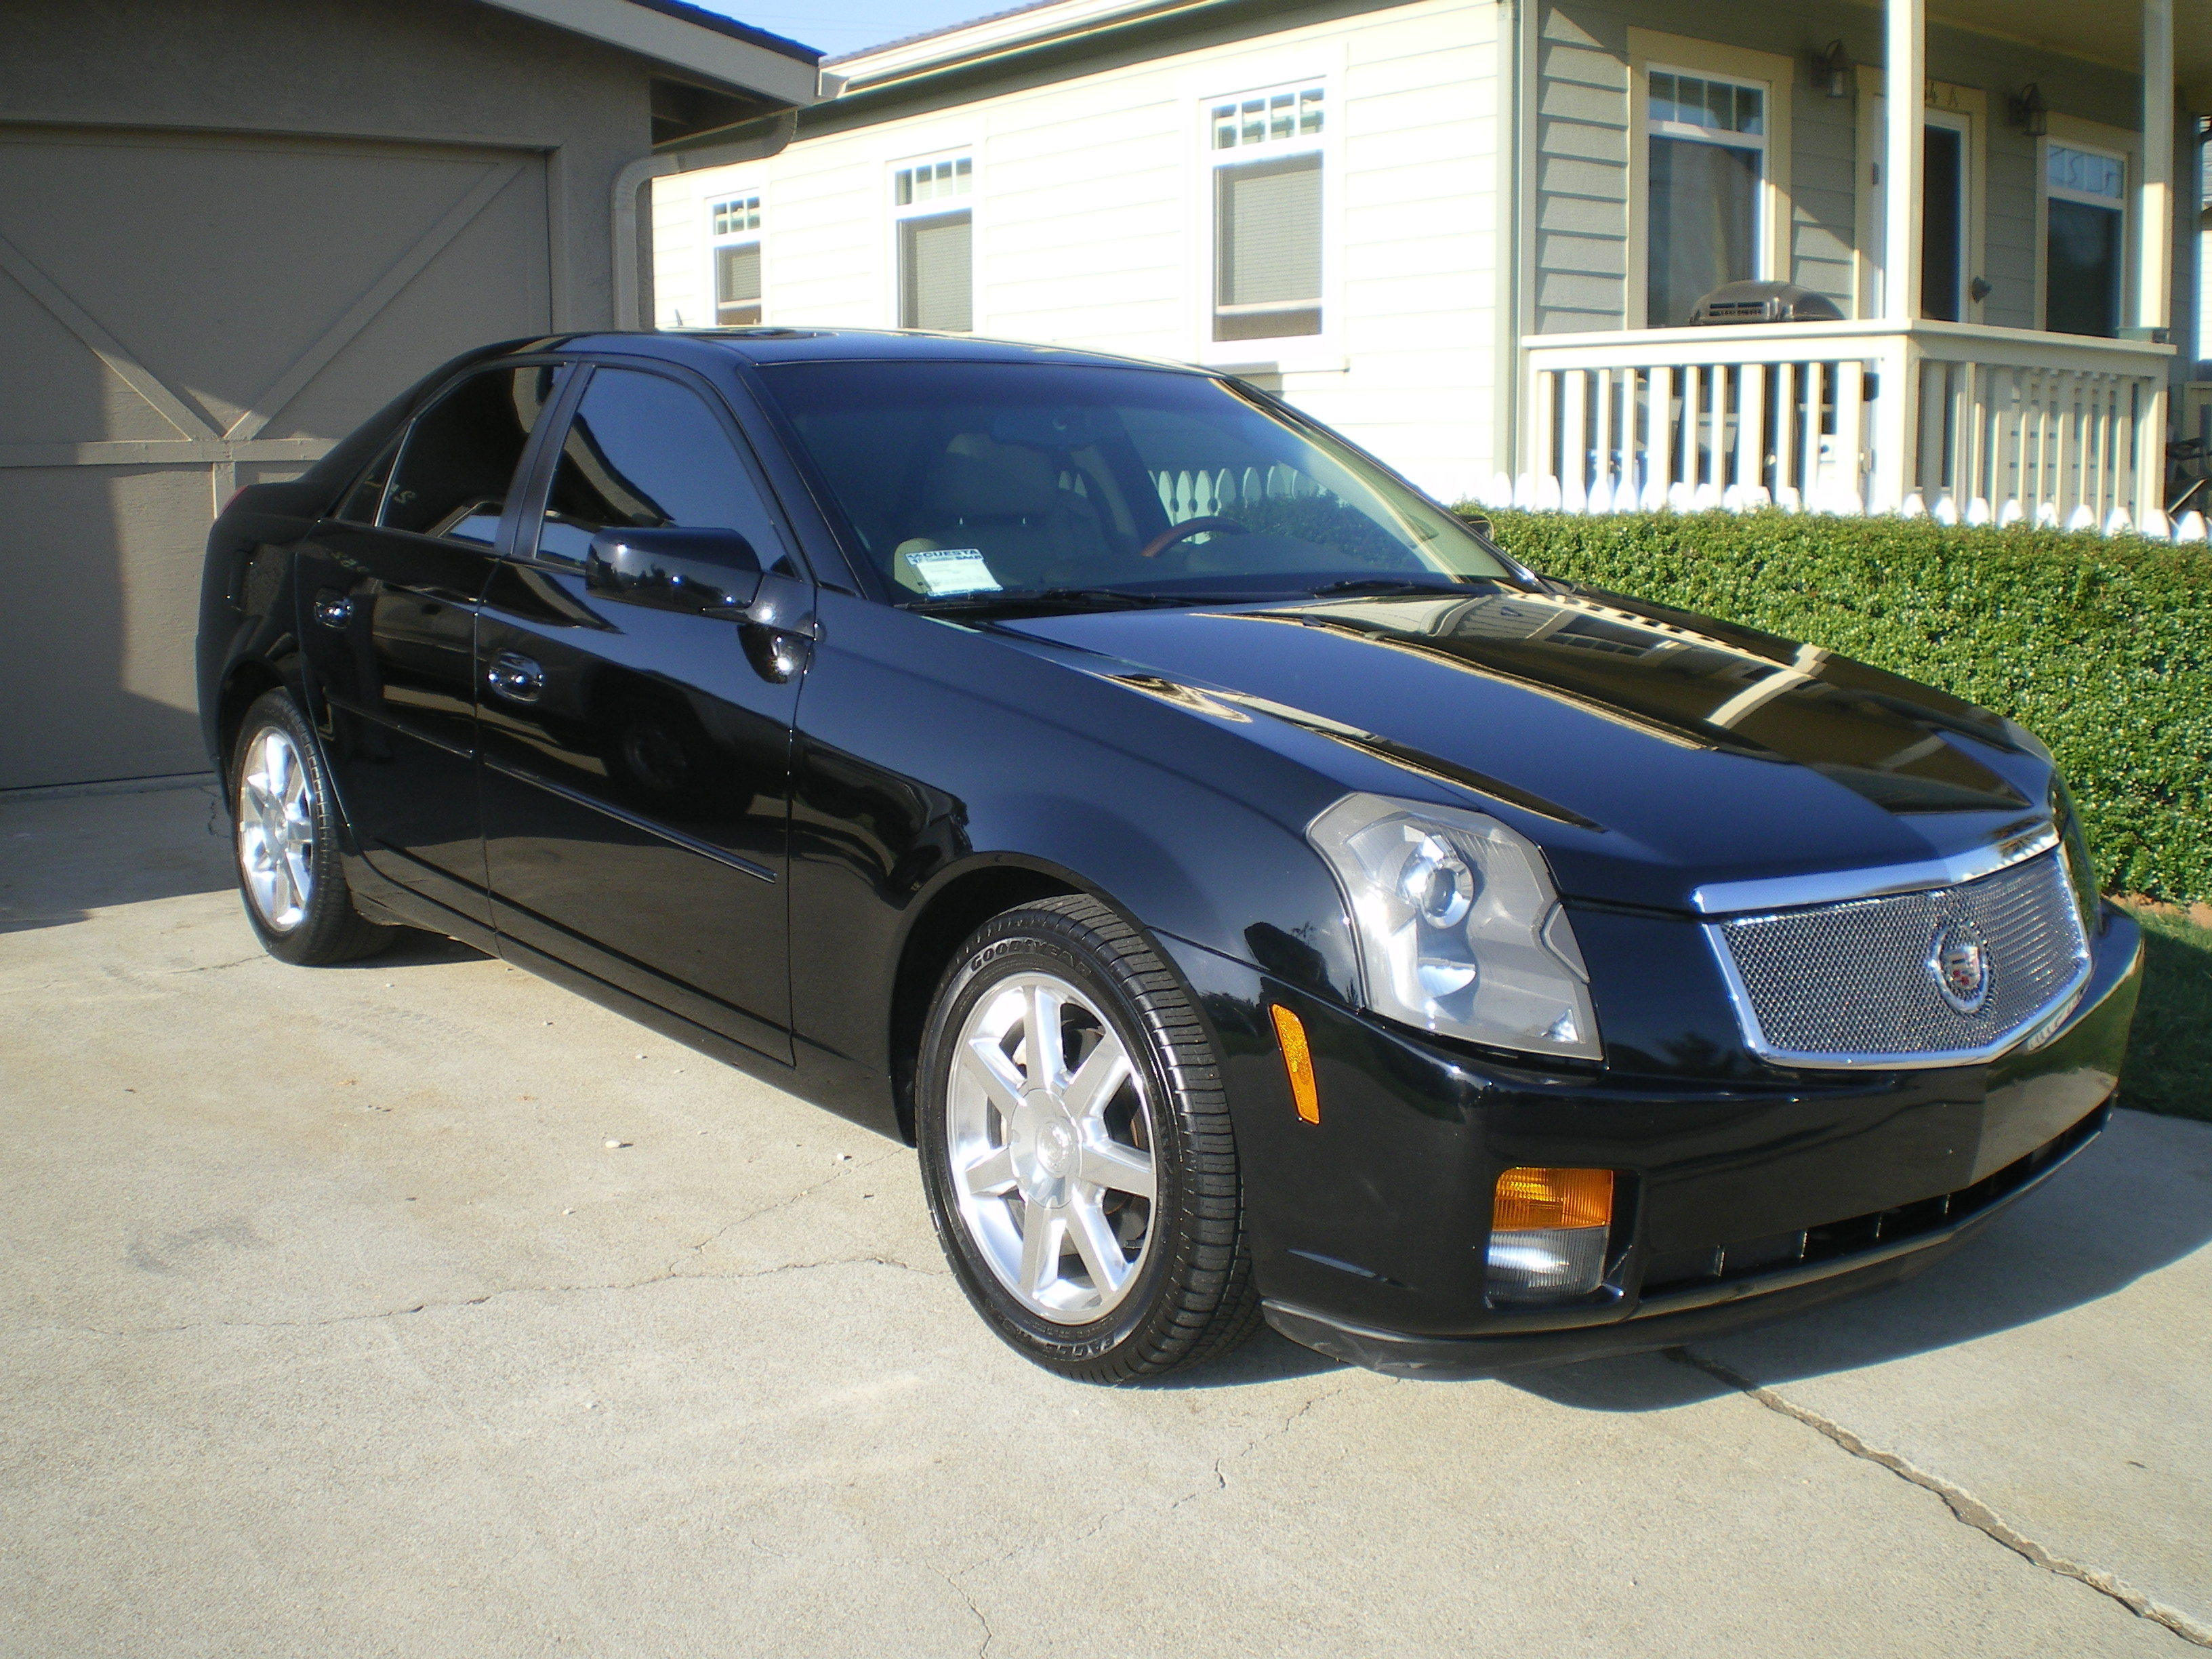 k8scts 2005 cadillac cts specs photos modification info. Black Bedroom Furniture Sets. Home Design Ideas